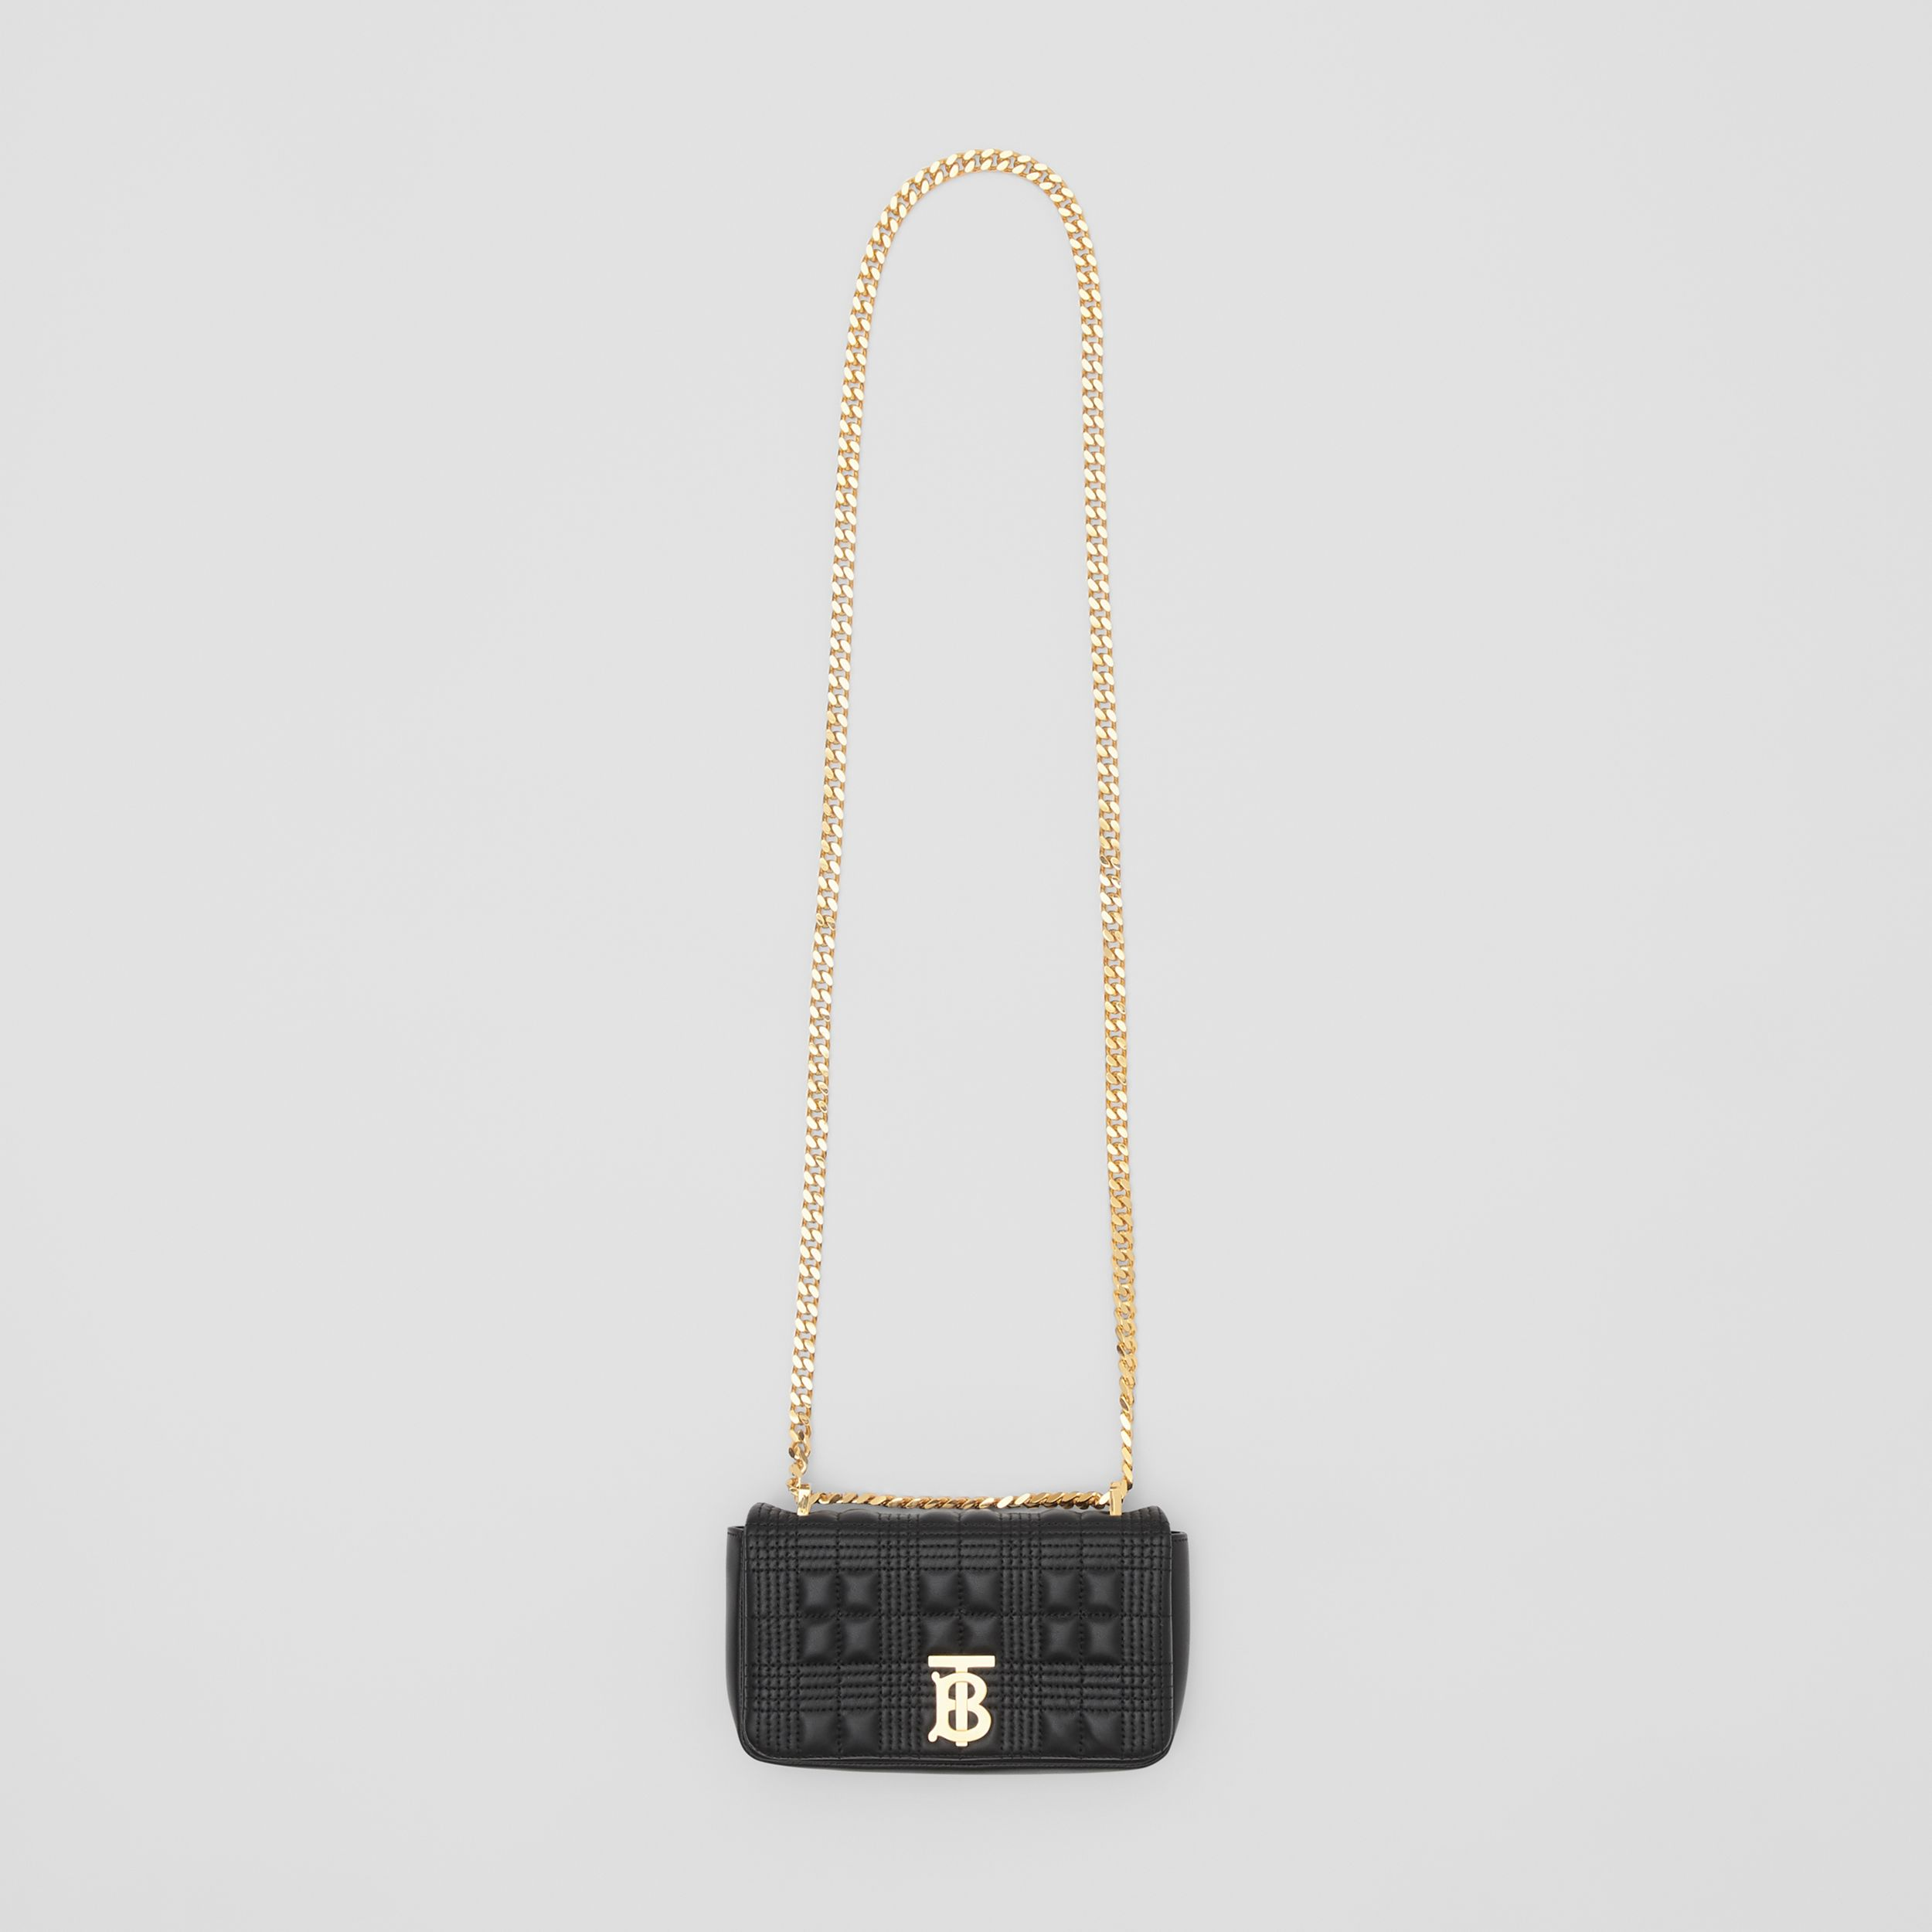 Mini Quilted Lambskin Lola Bag in Black - Women | Burberry - 4